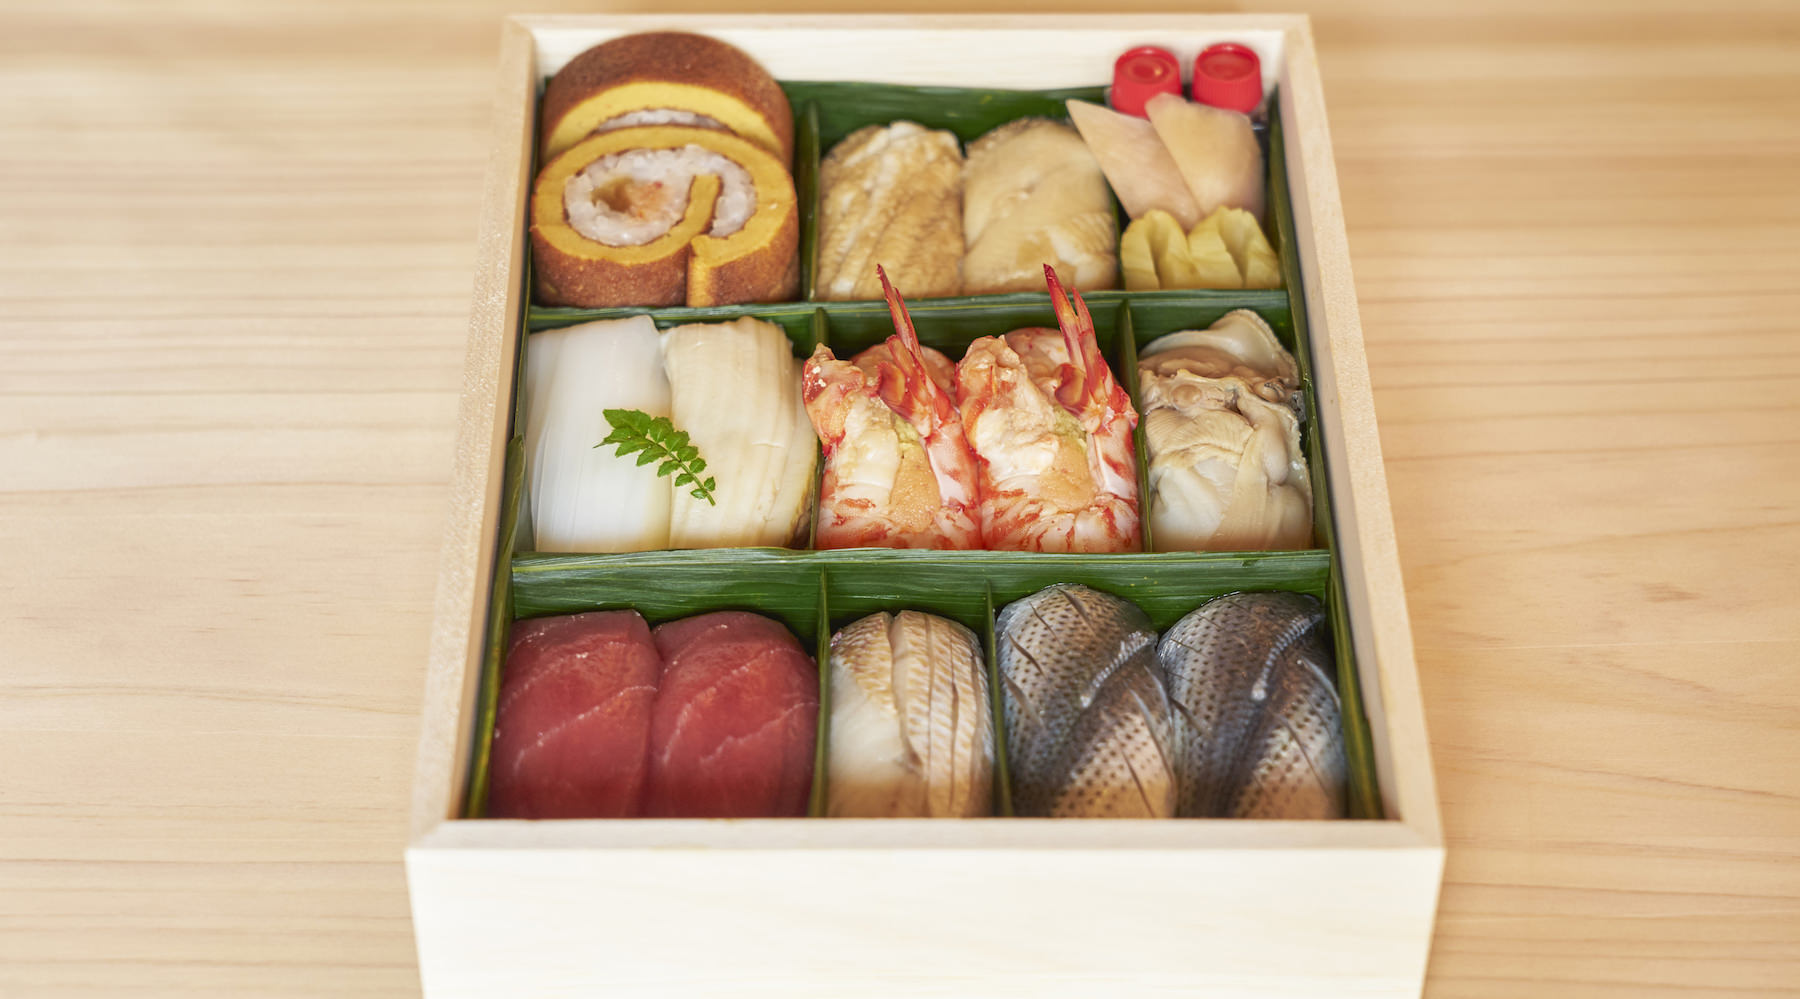 Sushi Ao (Takeaway)'s images3